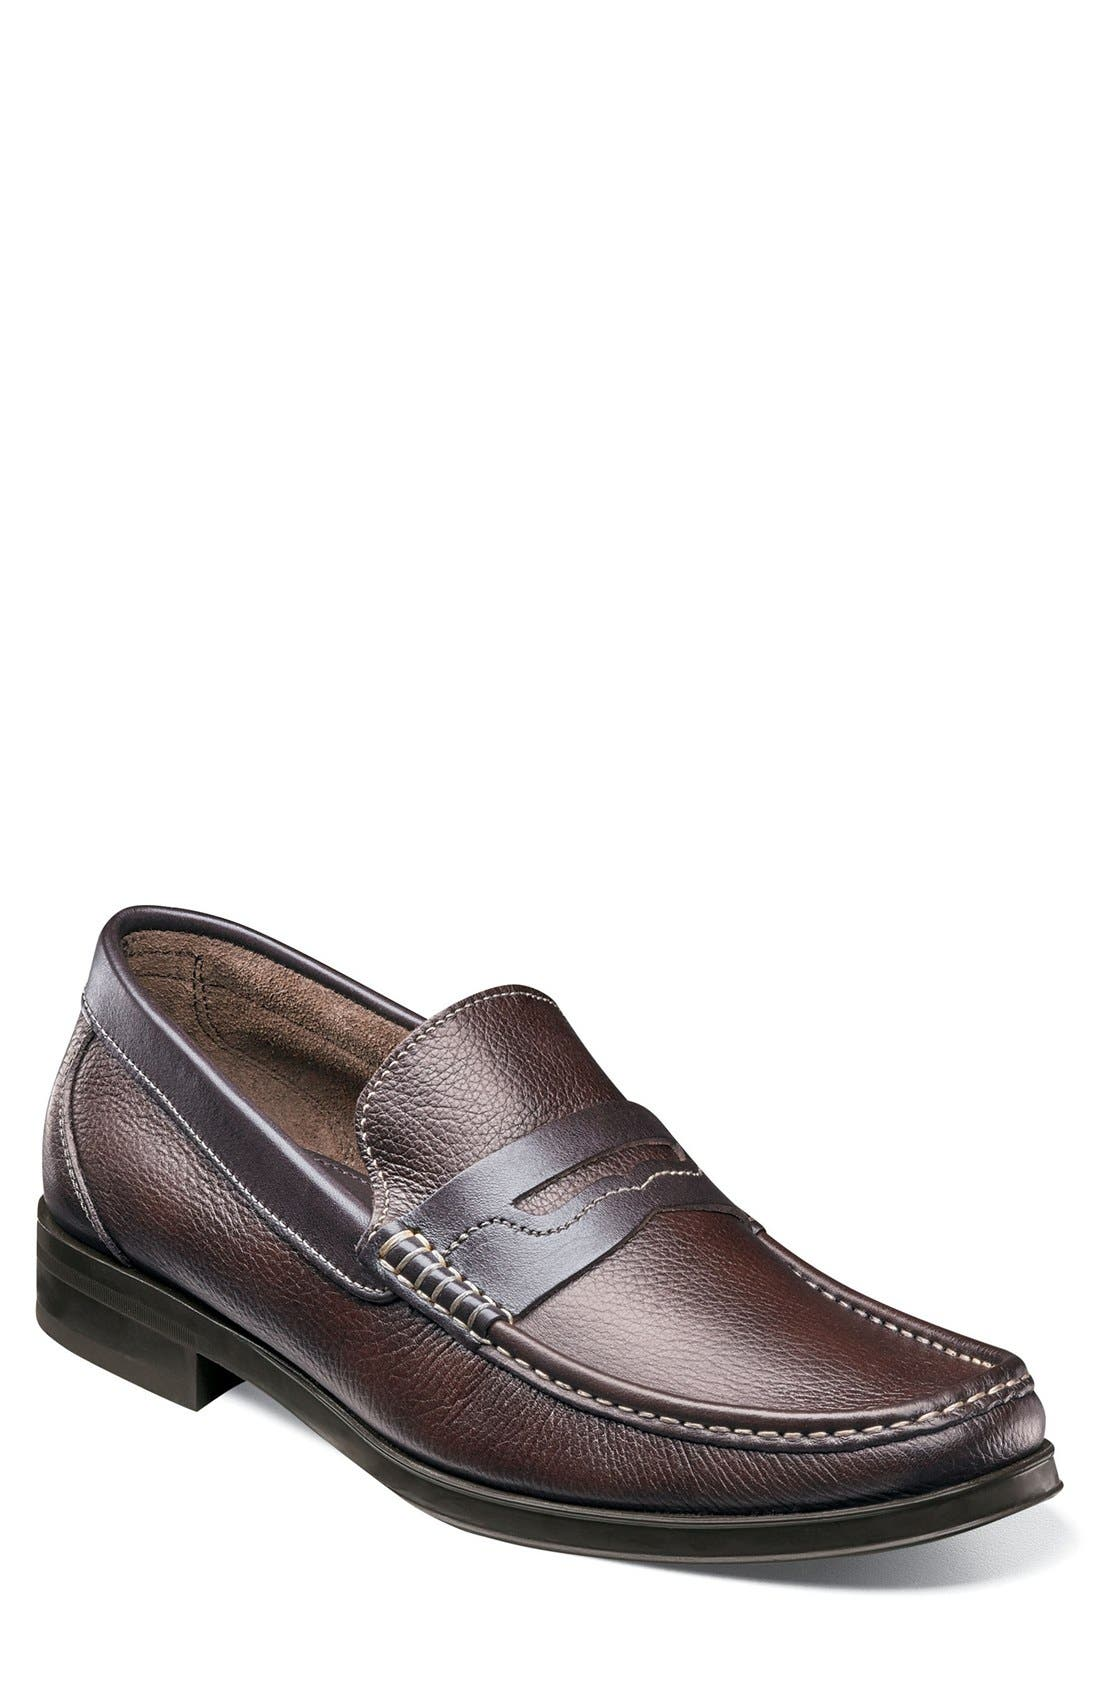 Westbrook Penny Loafer,                             Main thumbnail 1, color,                             Brown Milled Leather